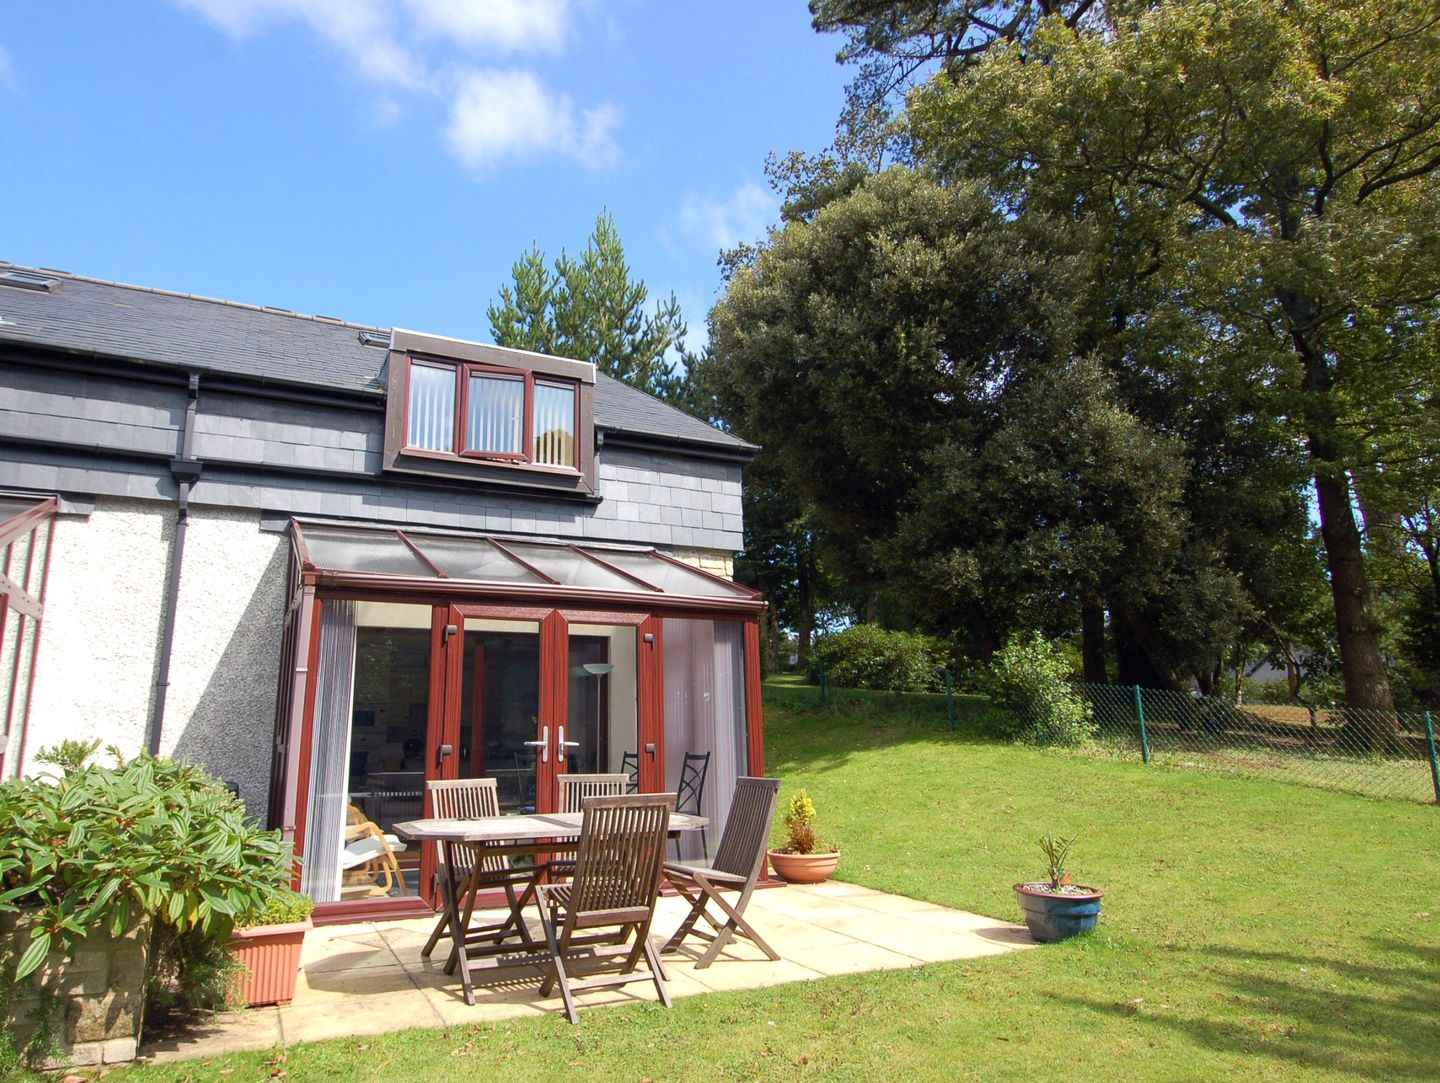 Holiday Cottage Reviews for Mewstone - Holiday Cottage in Maenporth, Cornwall inc Scilly